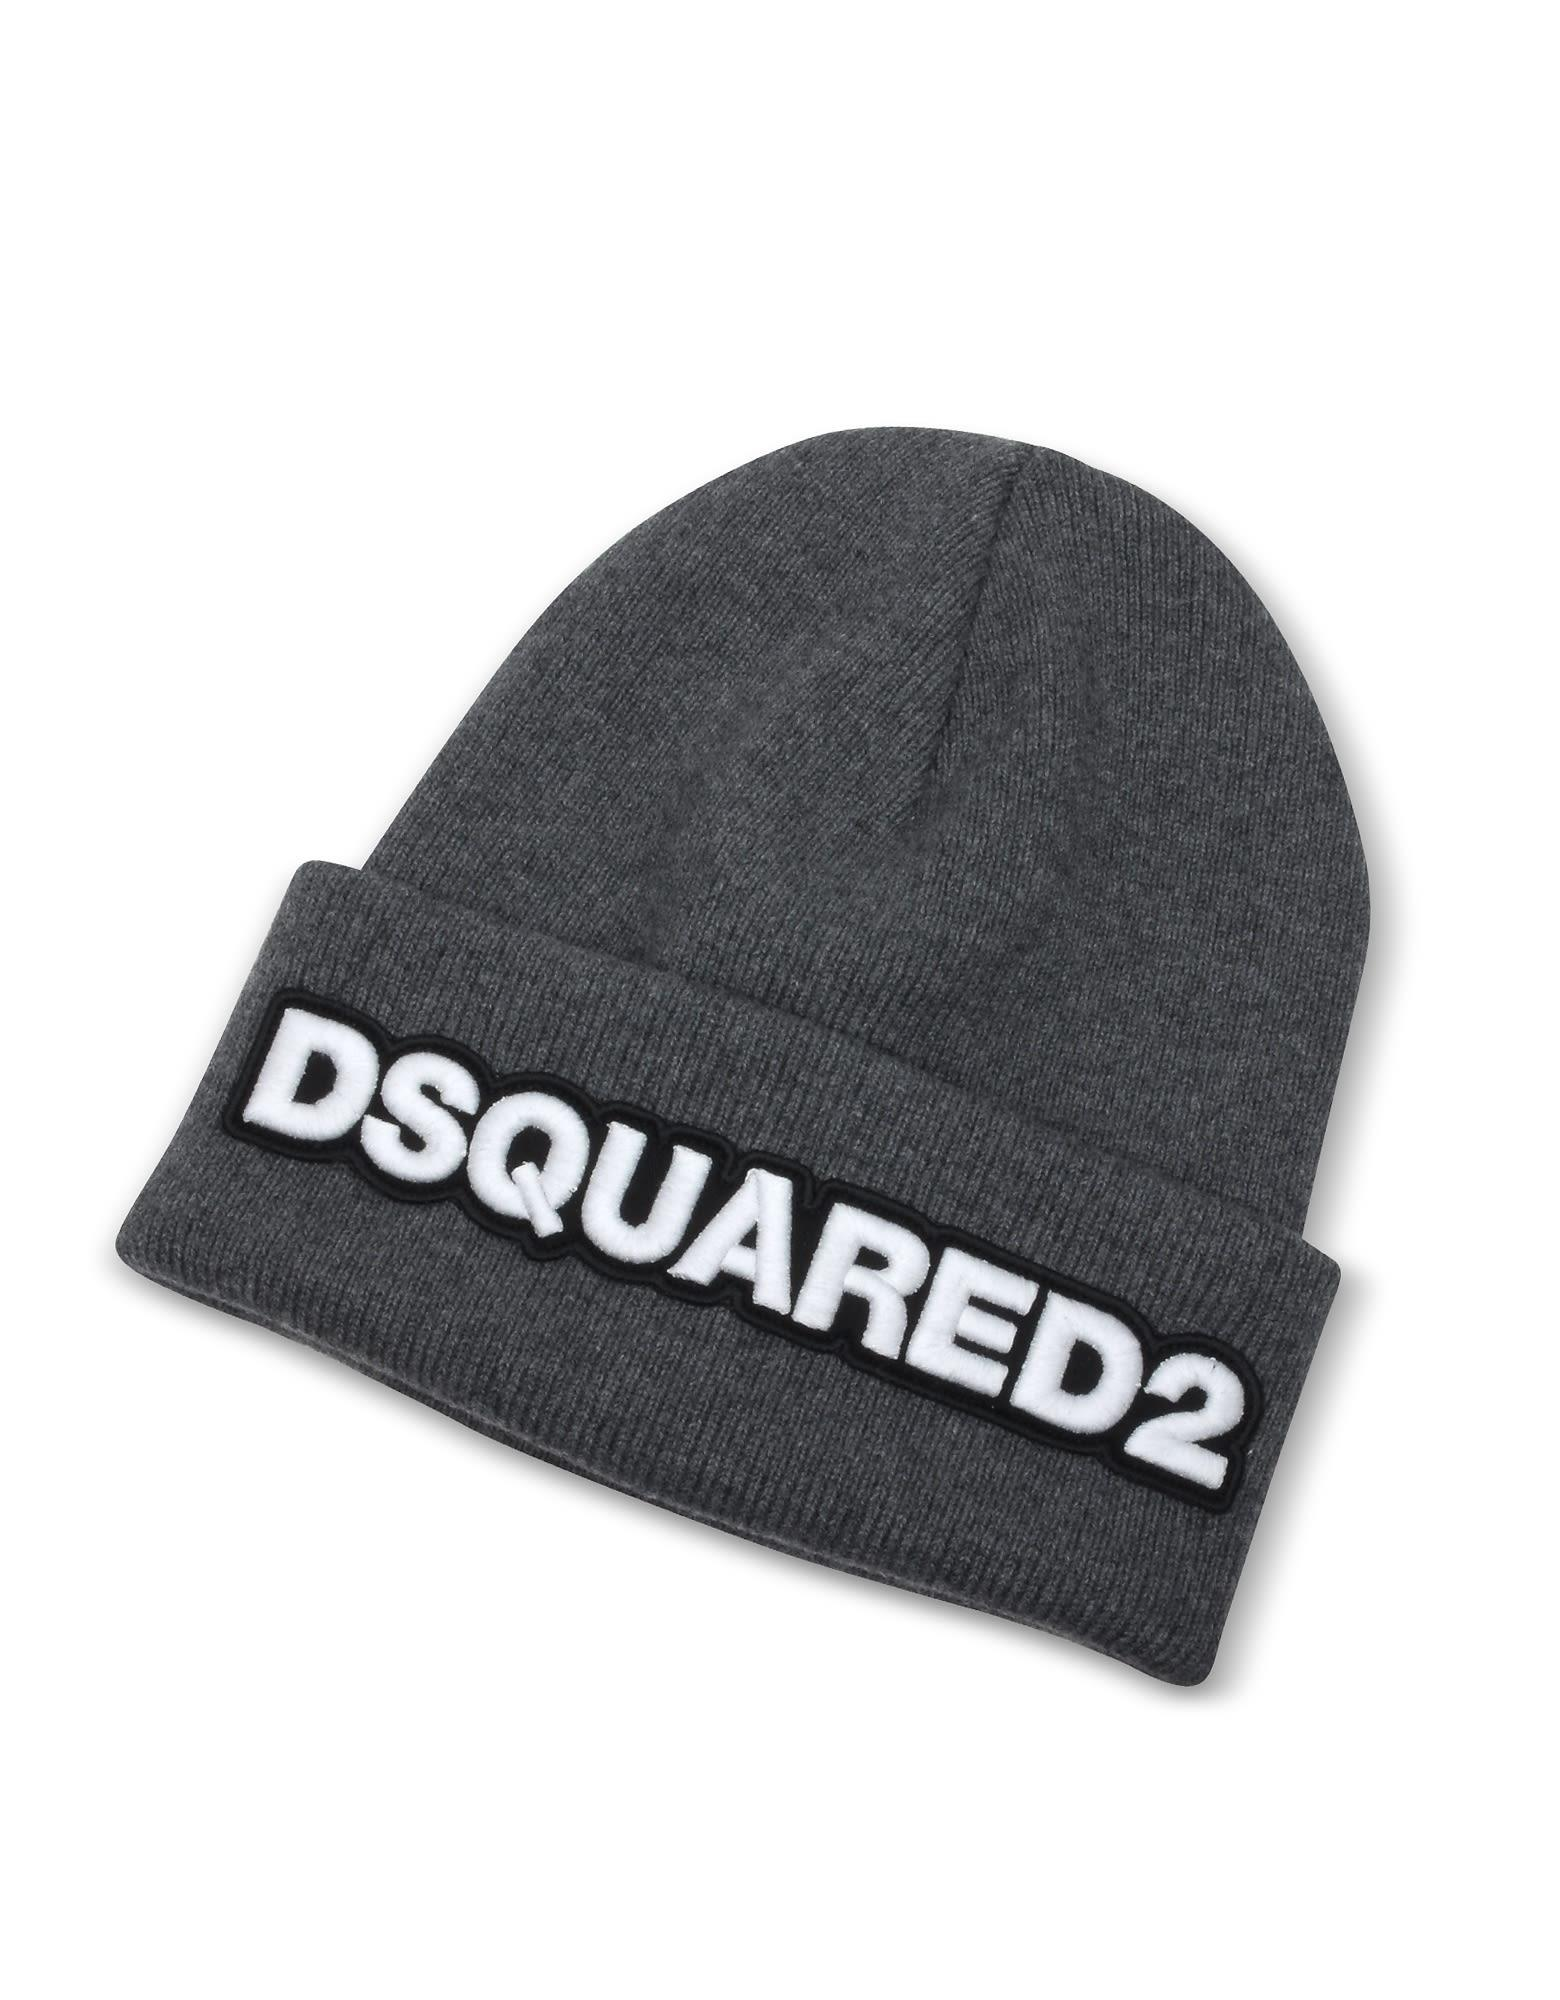 a656d0e20b5 Dsquared2 Embroidered Logo Anthracite Wool Beanie In Gray